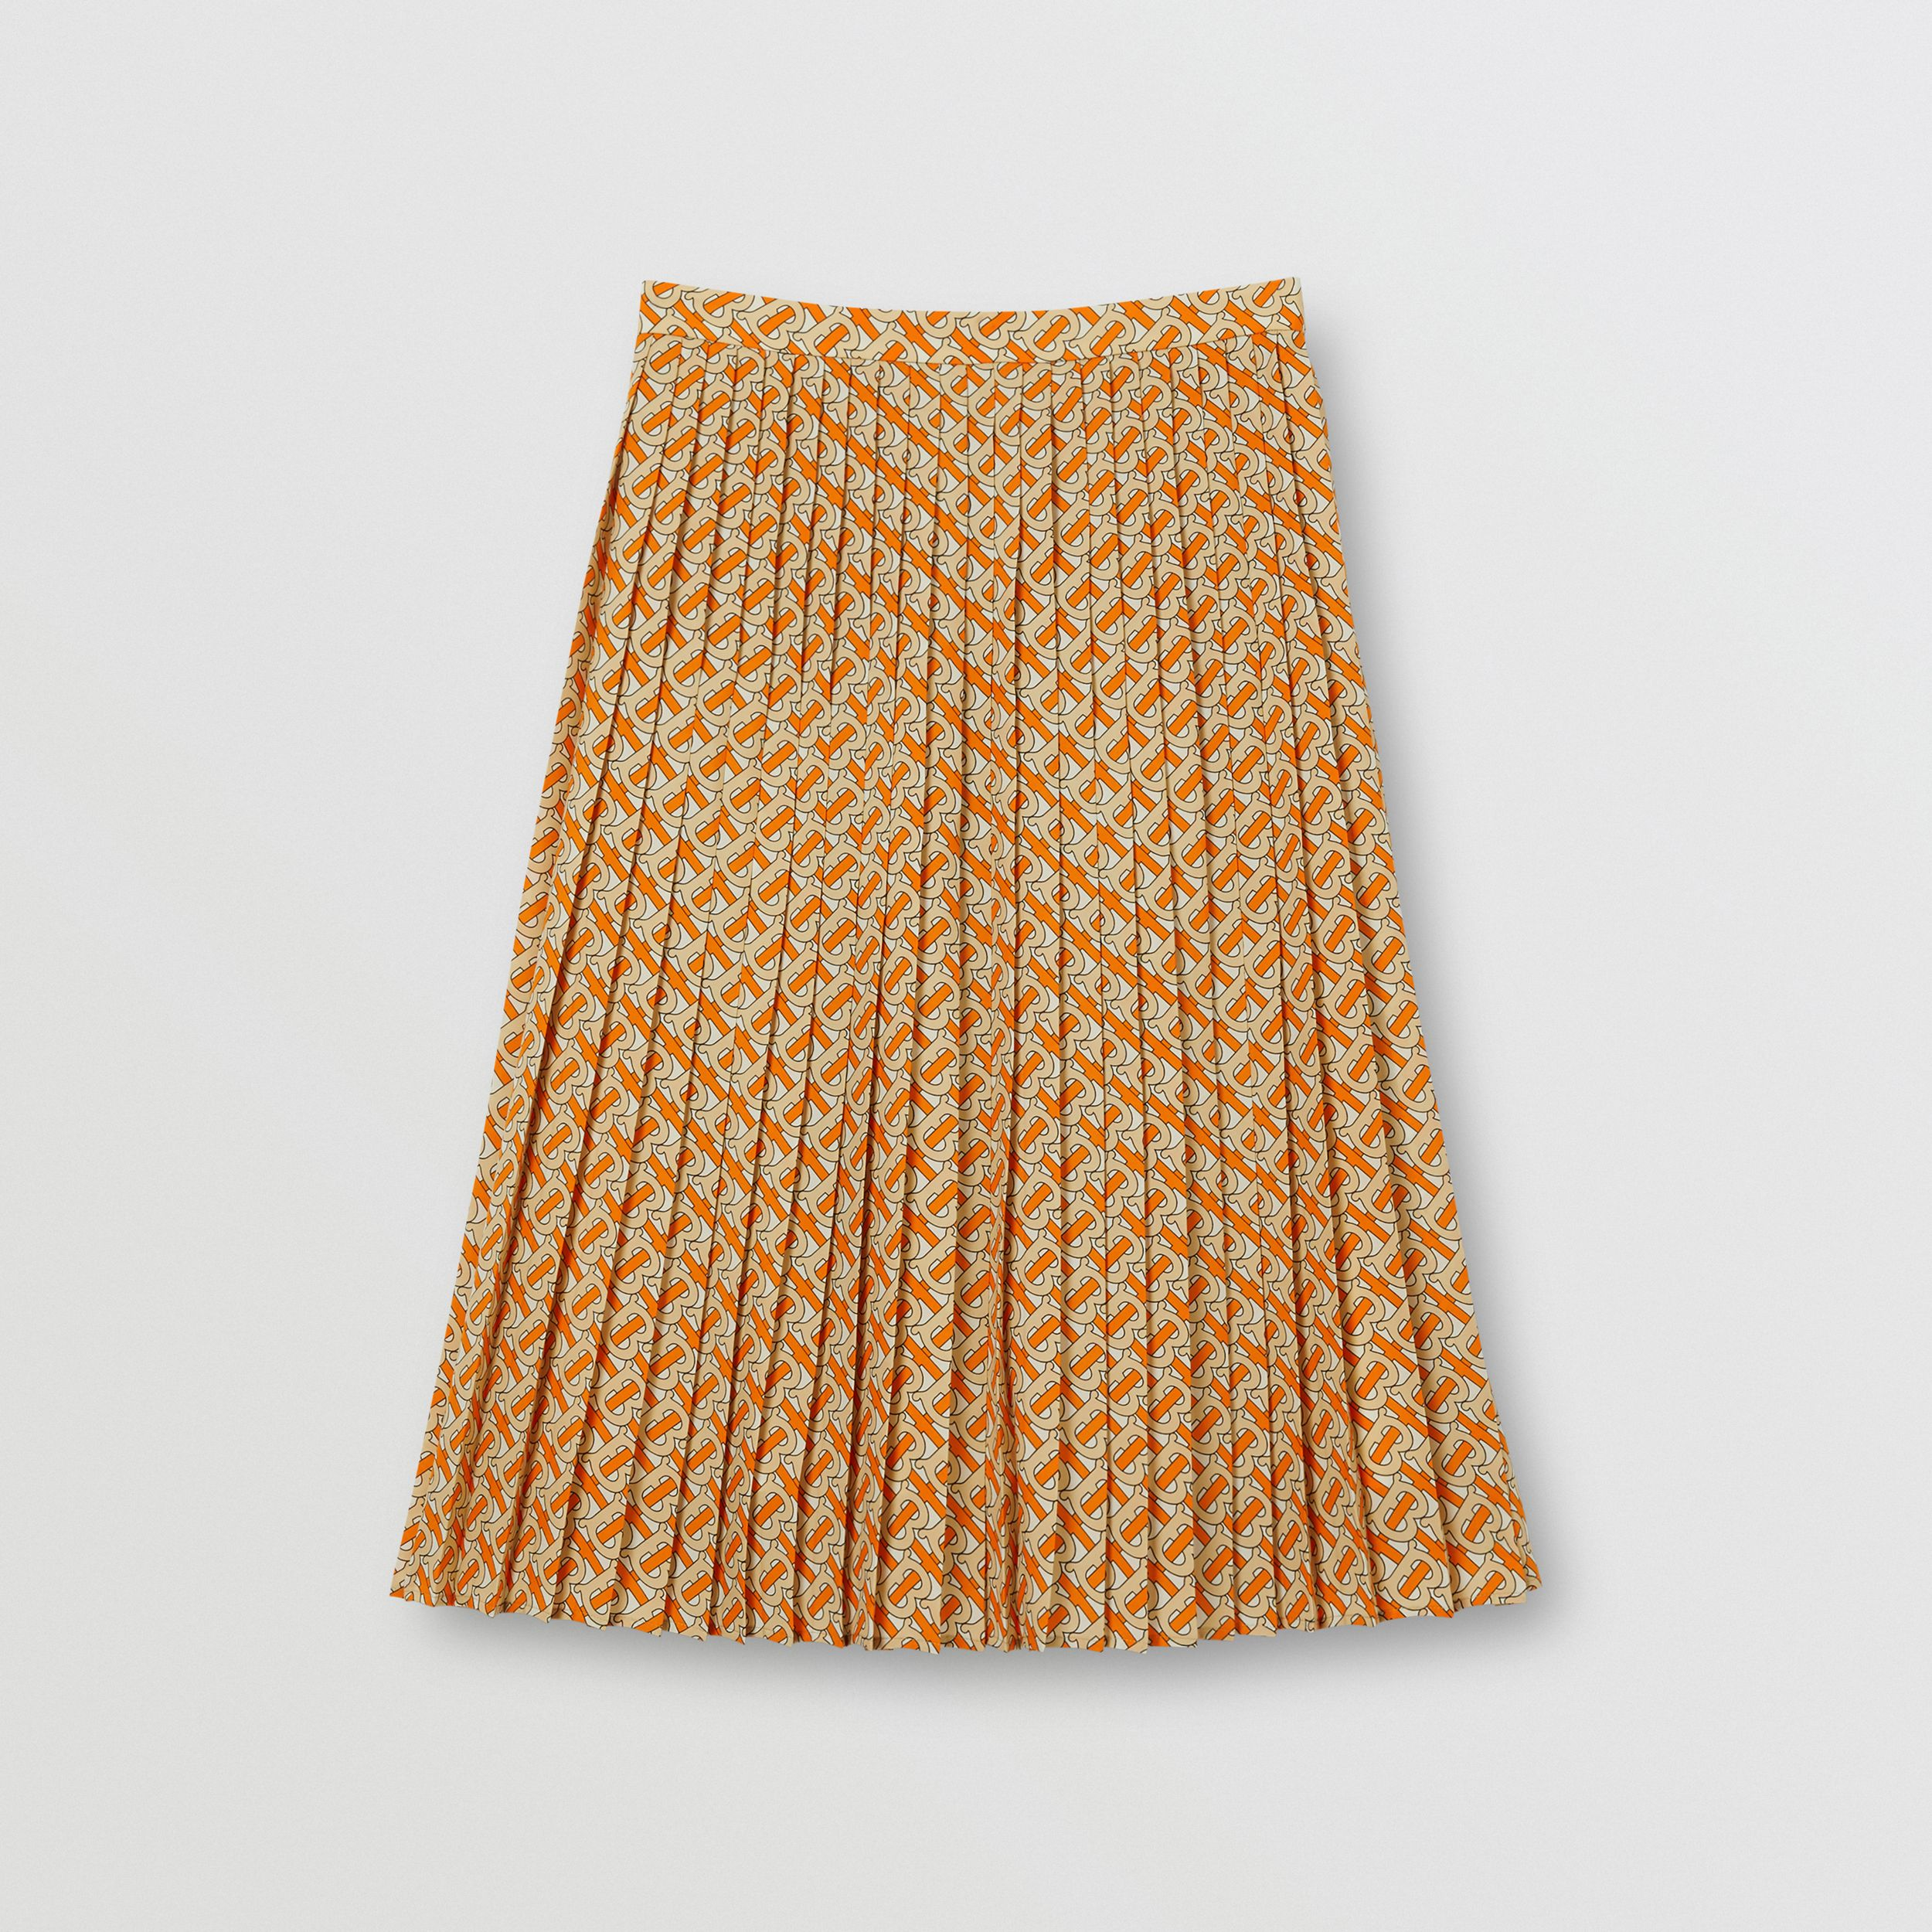 Monogram Print Crepe De Chine Pleated Skirt in Bright Orange - Women | Burberry - 4